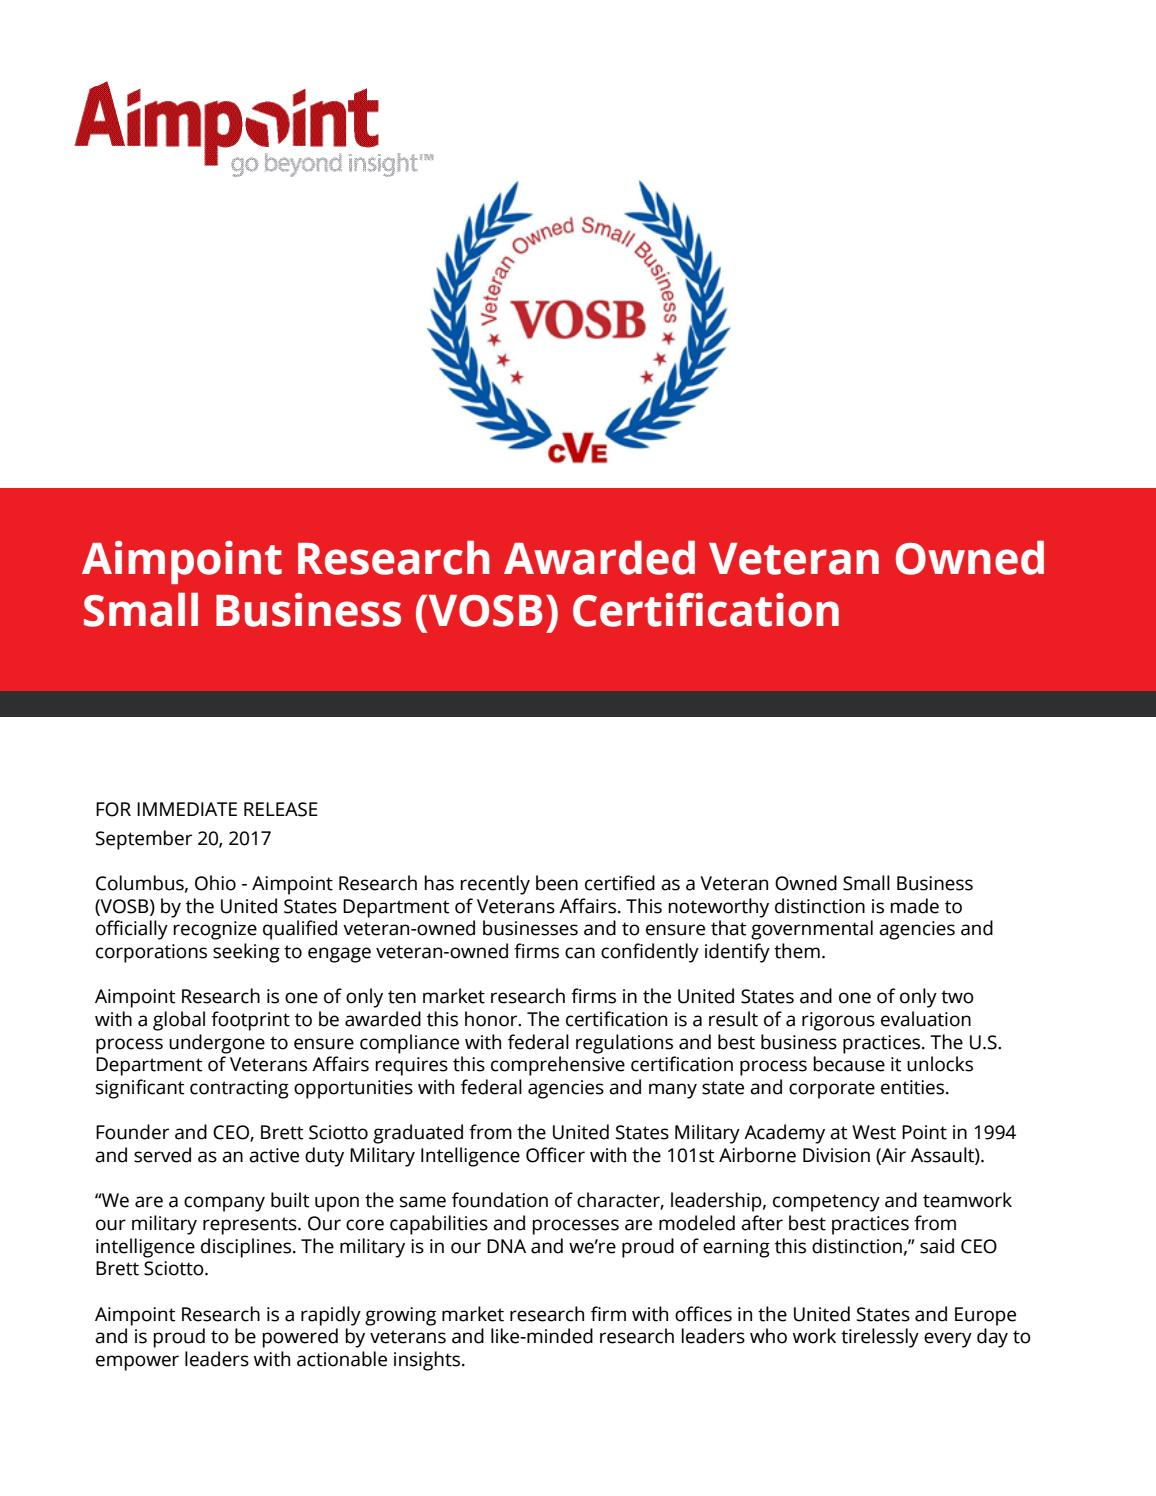 Aimpoint Awarded Veteran Owned Small Business Vosb Certification